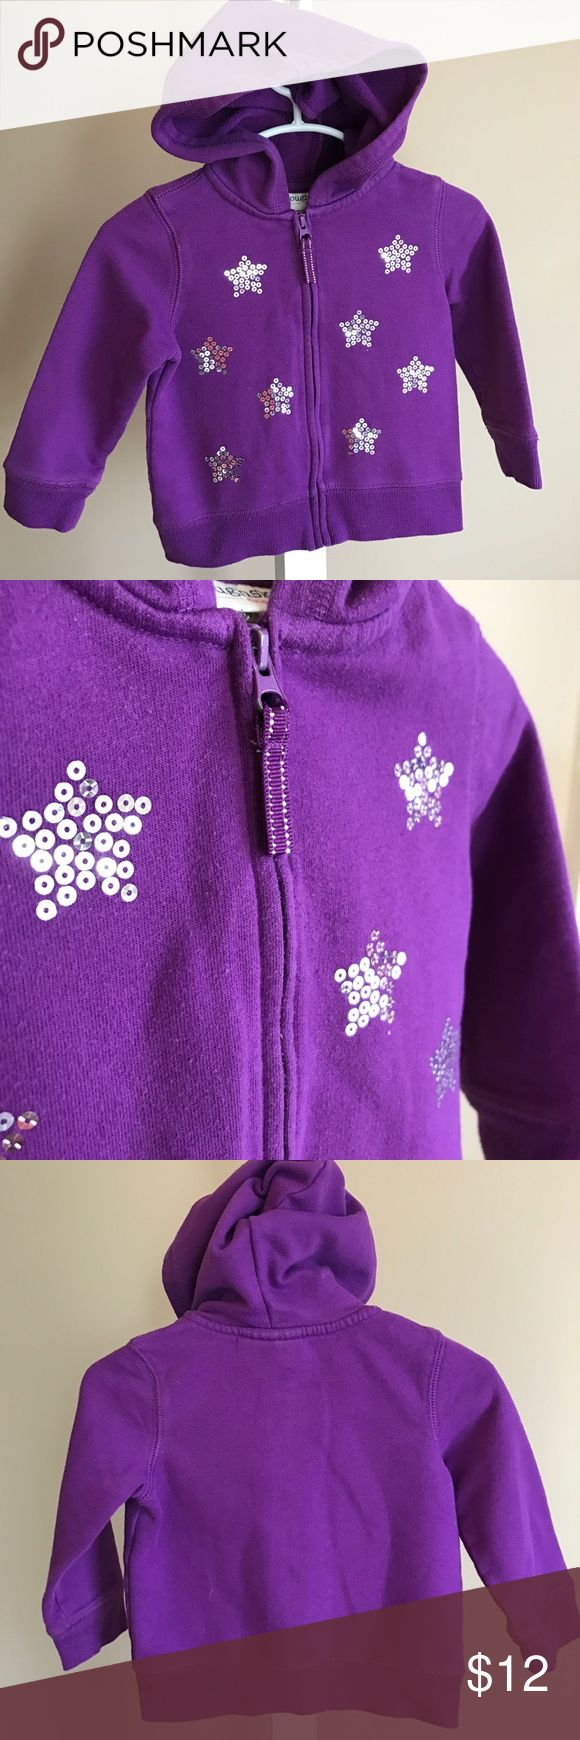 Purple Star Bling Super Awesome Hoodie My girl LOVED this purple hoodie with silver sequin stars!  Despite the wear and wash it still looks like new - this thing is DURABLE!  Love this one! Toughskins Shirts & Tops Sweatshirts & Hoodies